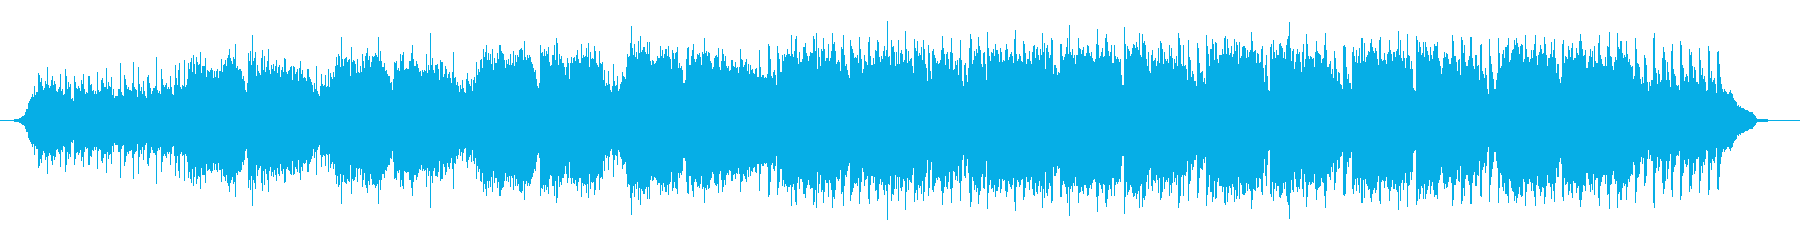 Bright and colorful BGM of violin and acoustic guitar's reproduced waveform